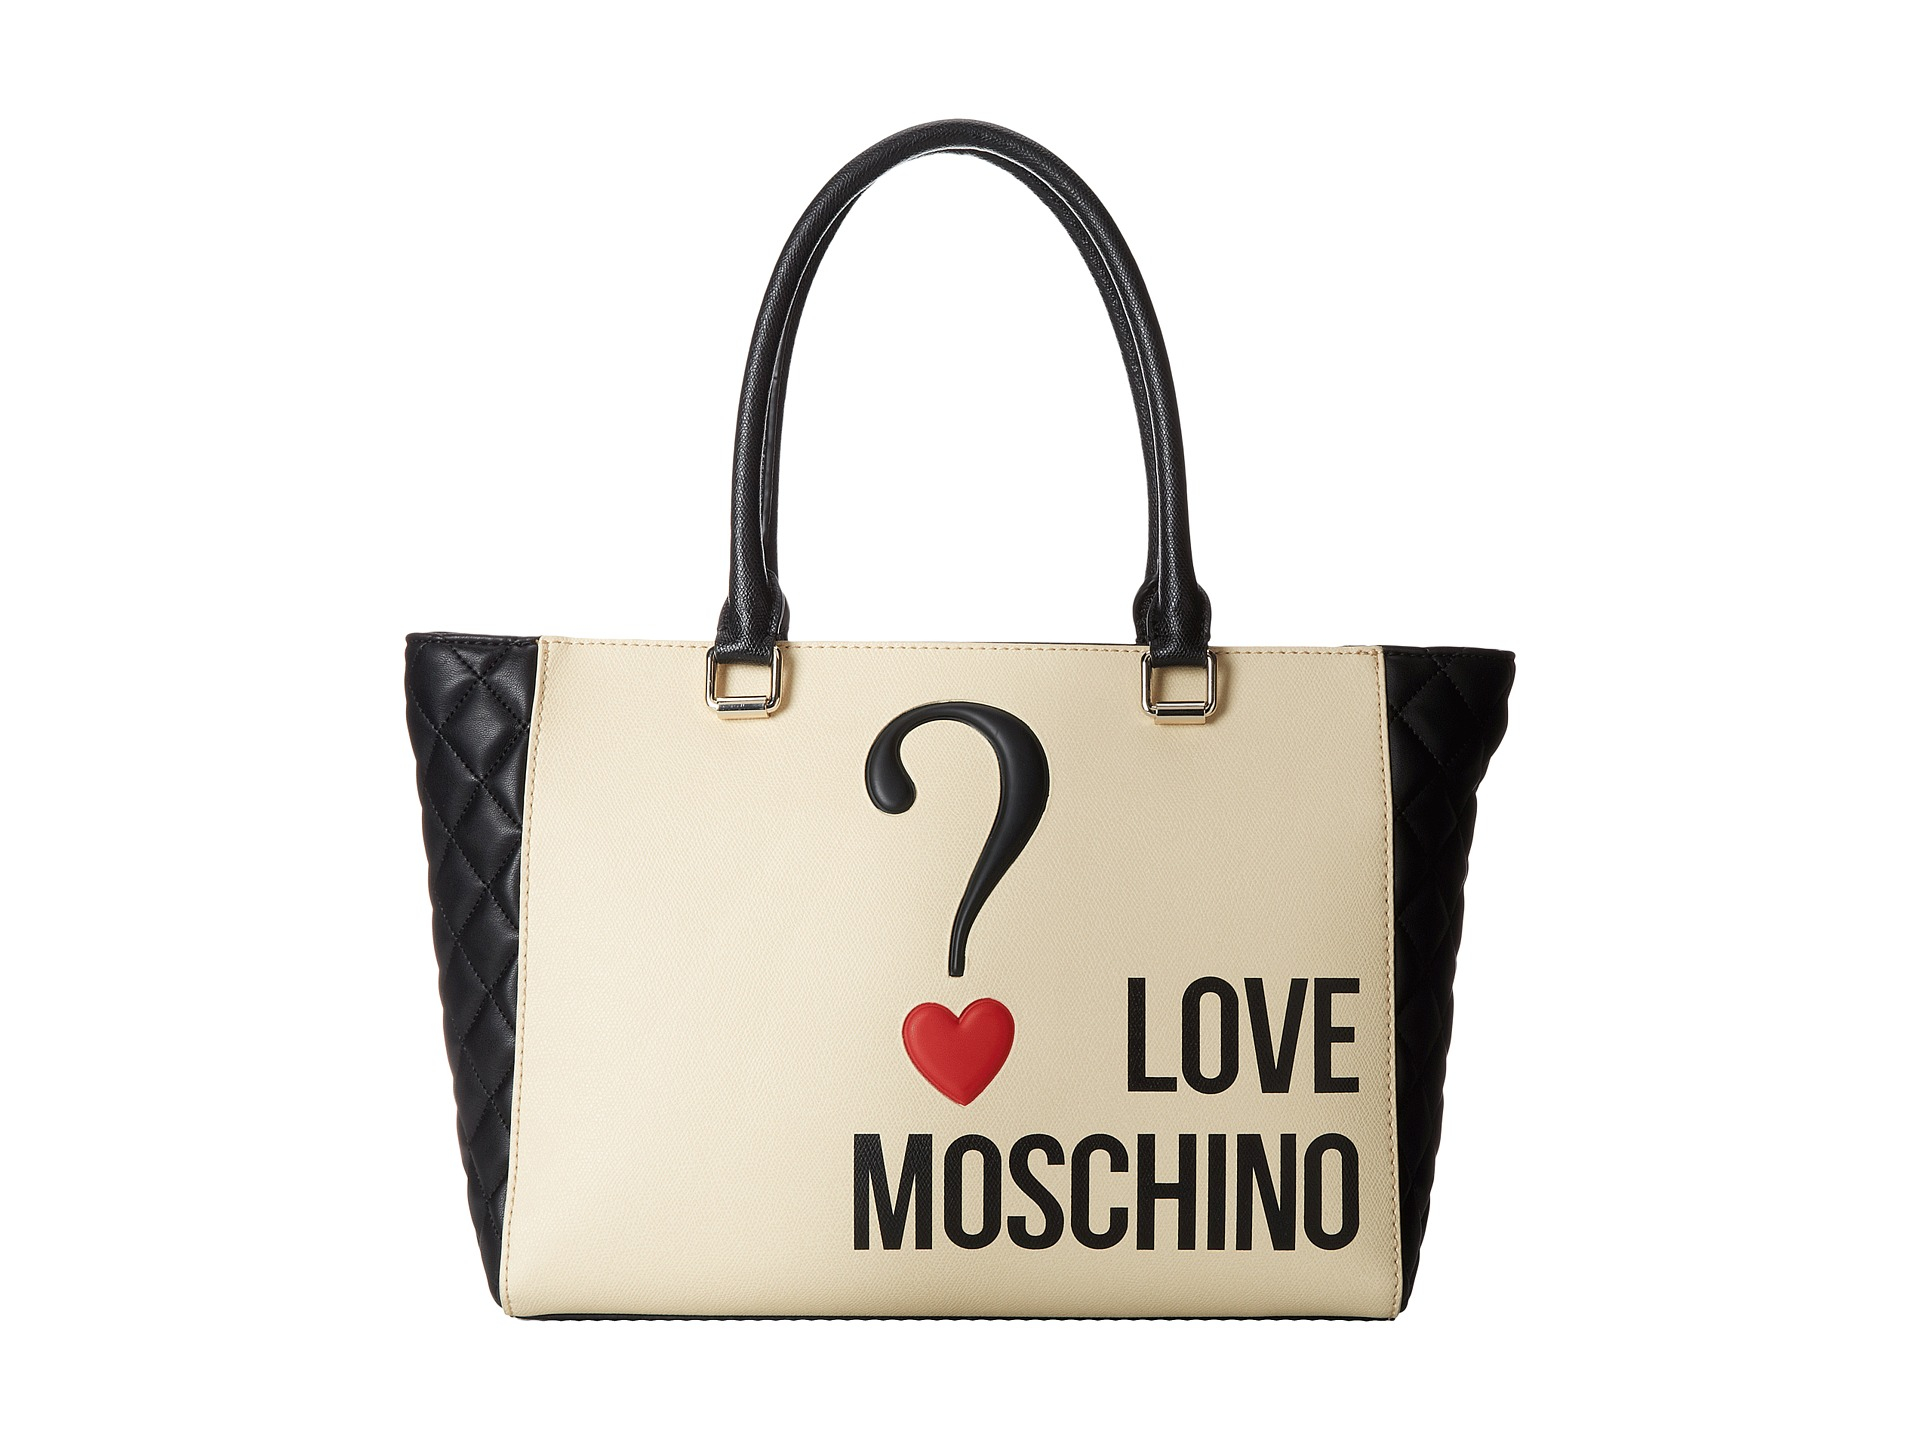 love moschino question mark bag in white lyst. Black Bedroom Furniture Sets. Home Design Ideas